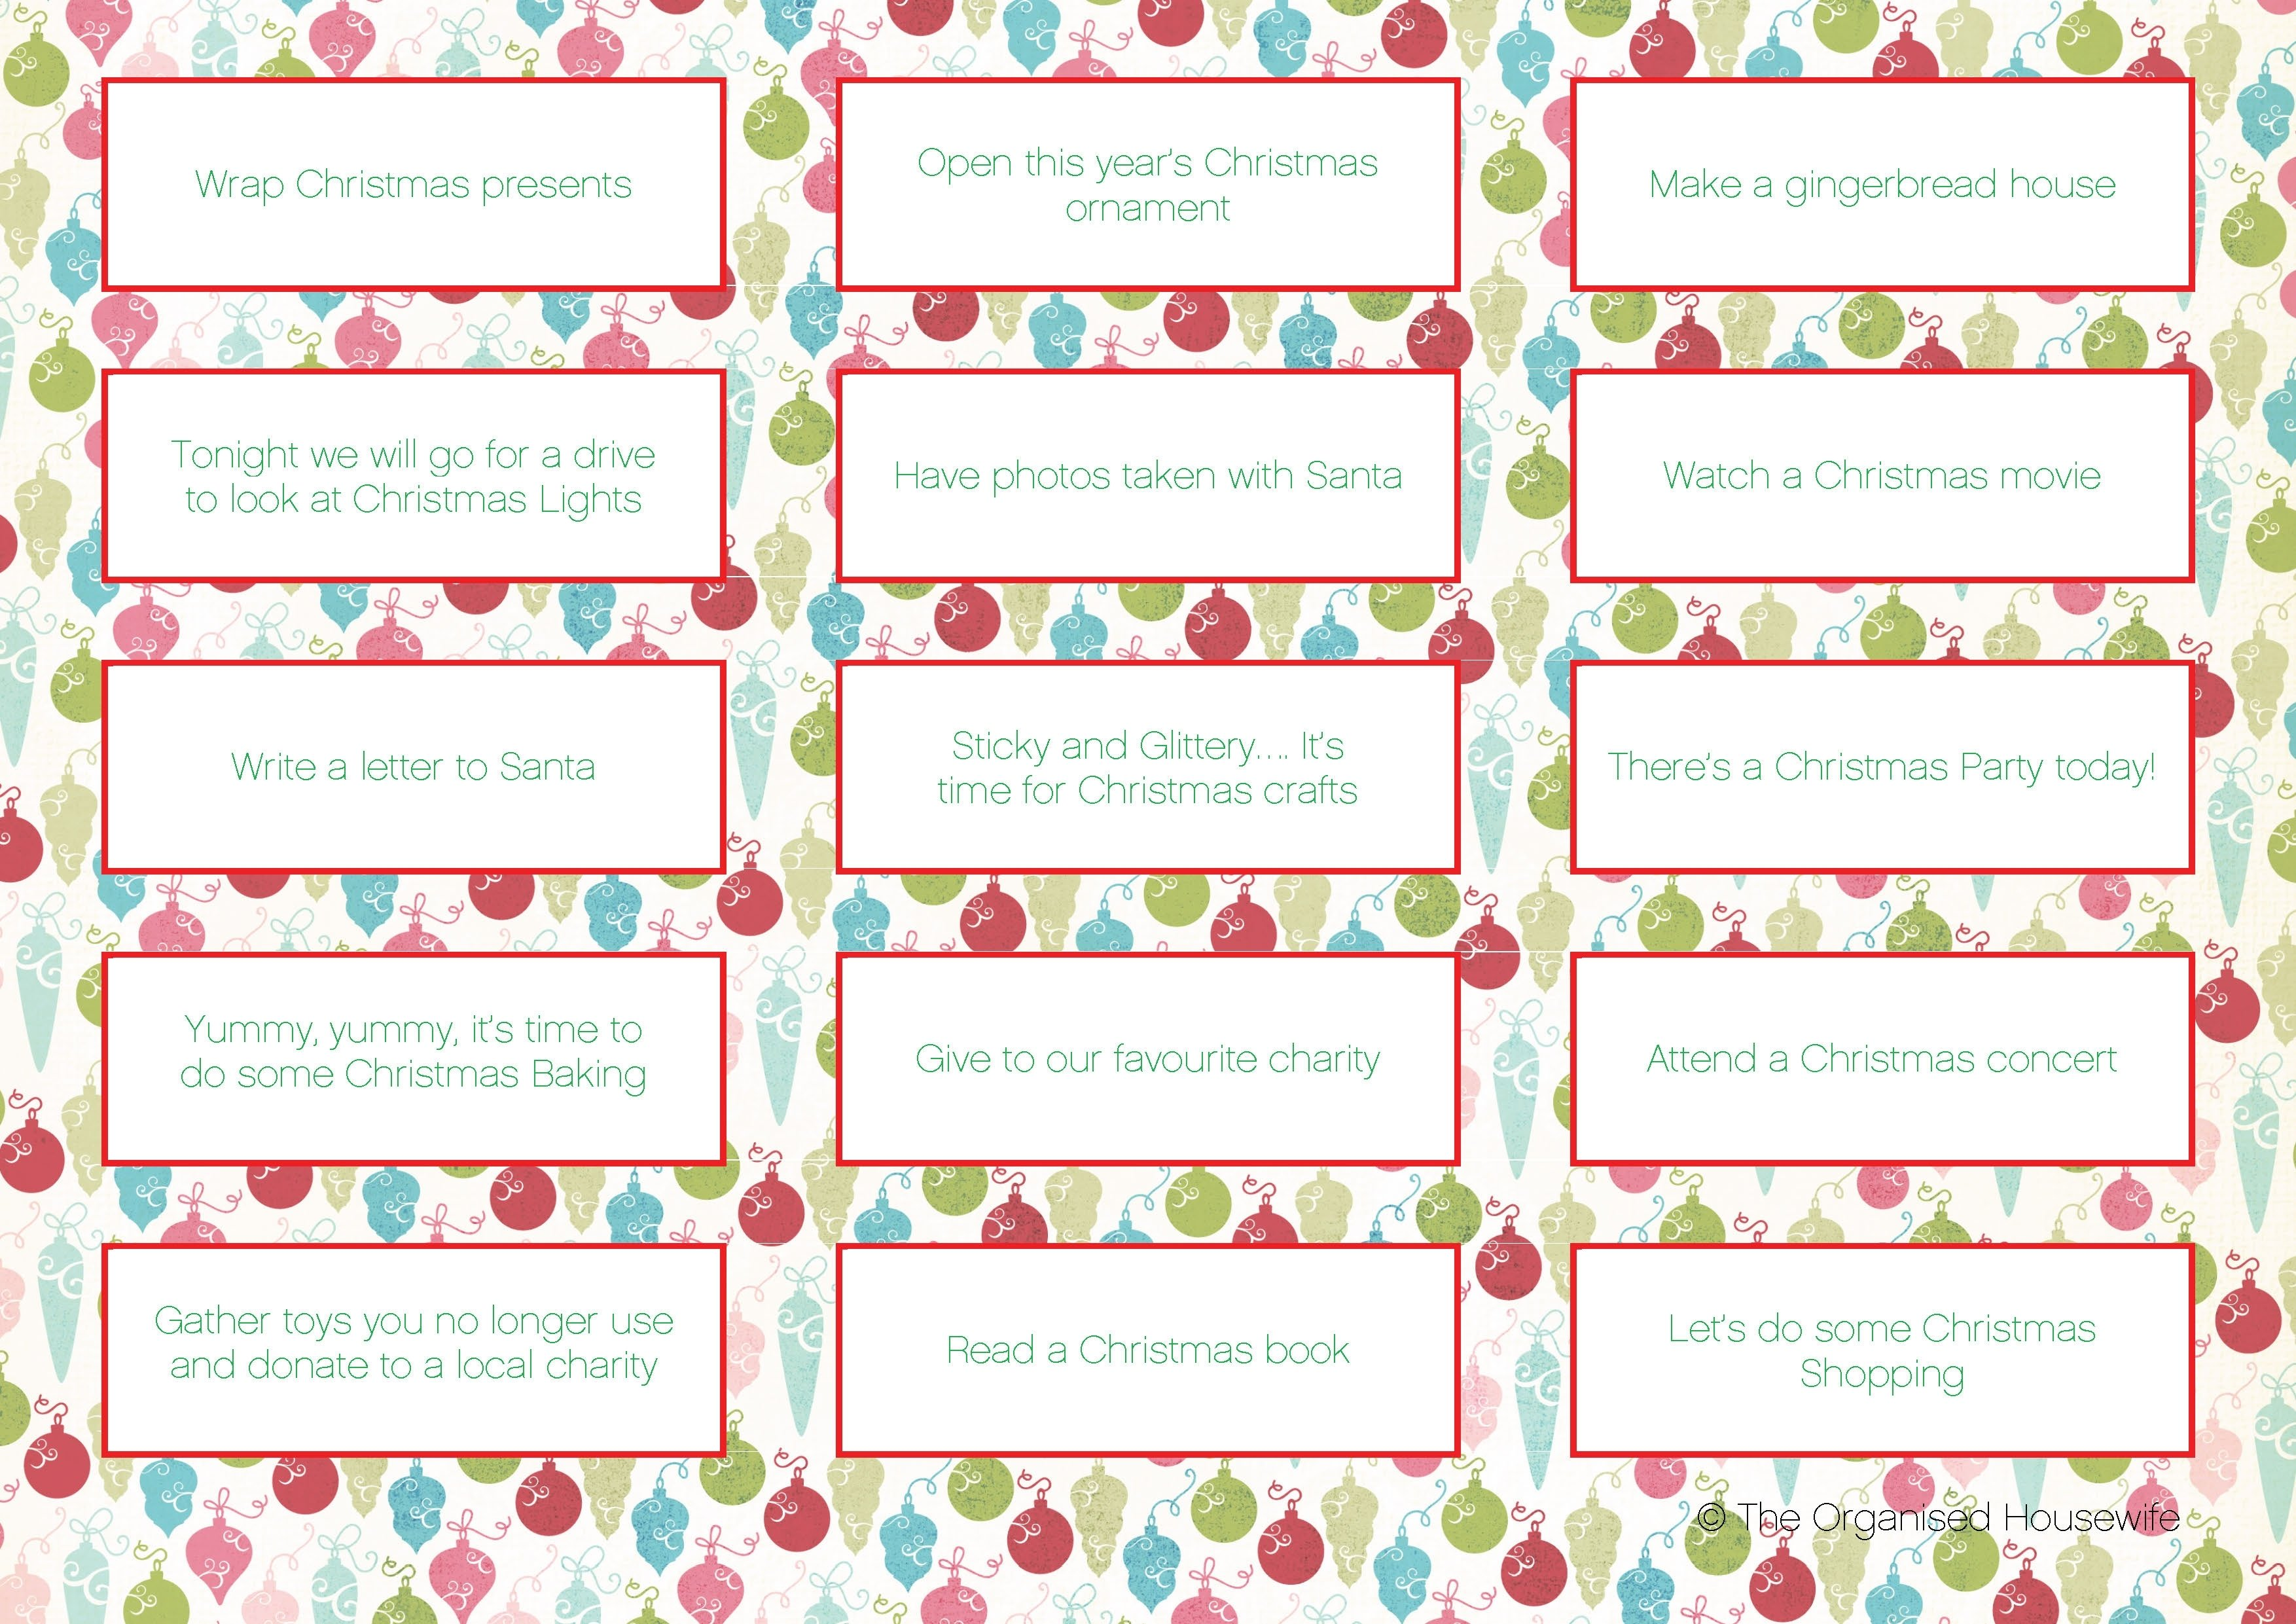 10 Trendy Ideas For Advent Calendar Gifts items to put in advent calendar the organised housewife